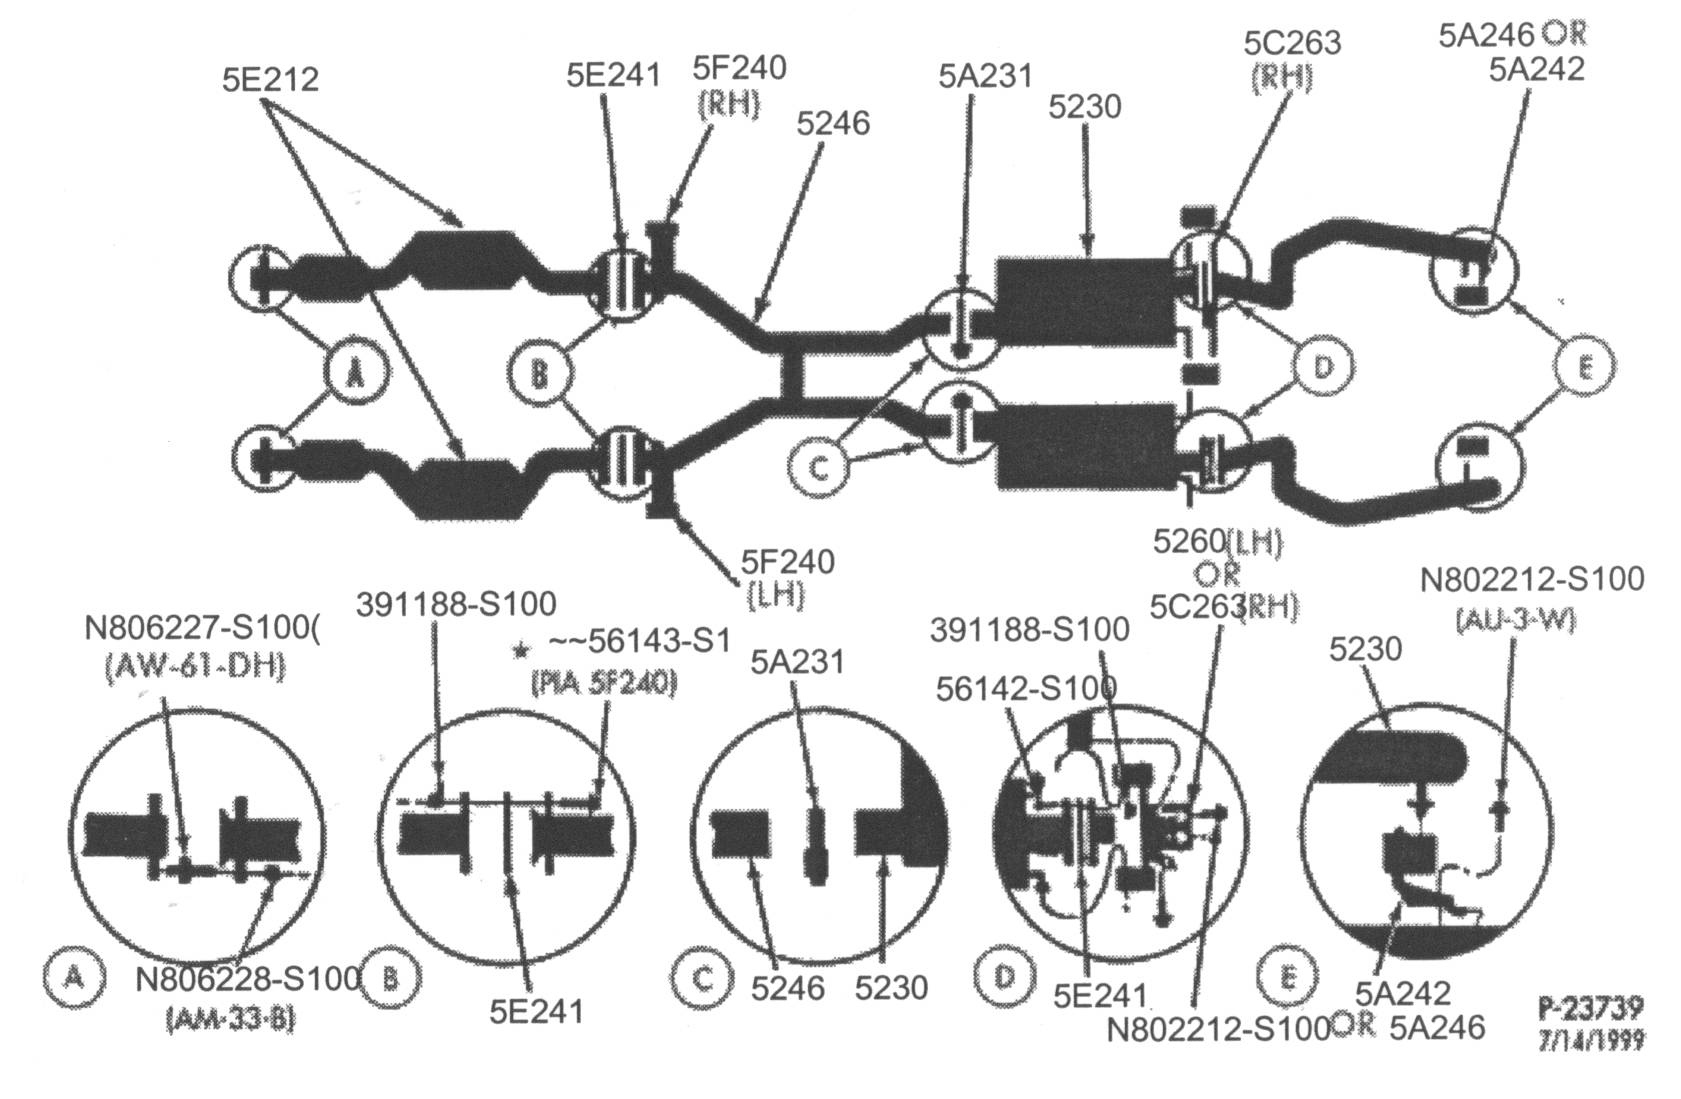 Wsct1 additionally pshp50 also cougar power window wiring diagram also p 0996b43f8037eb66 furthermore p 0996b43f8036fcf0